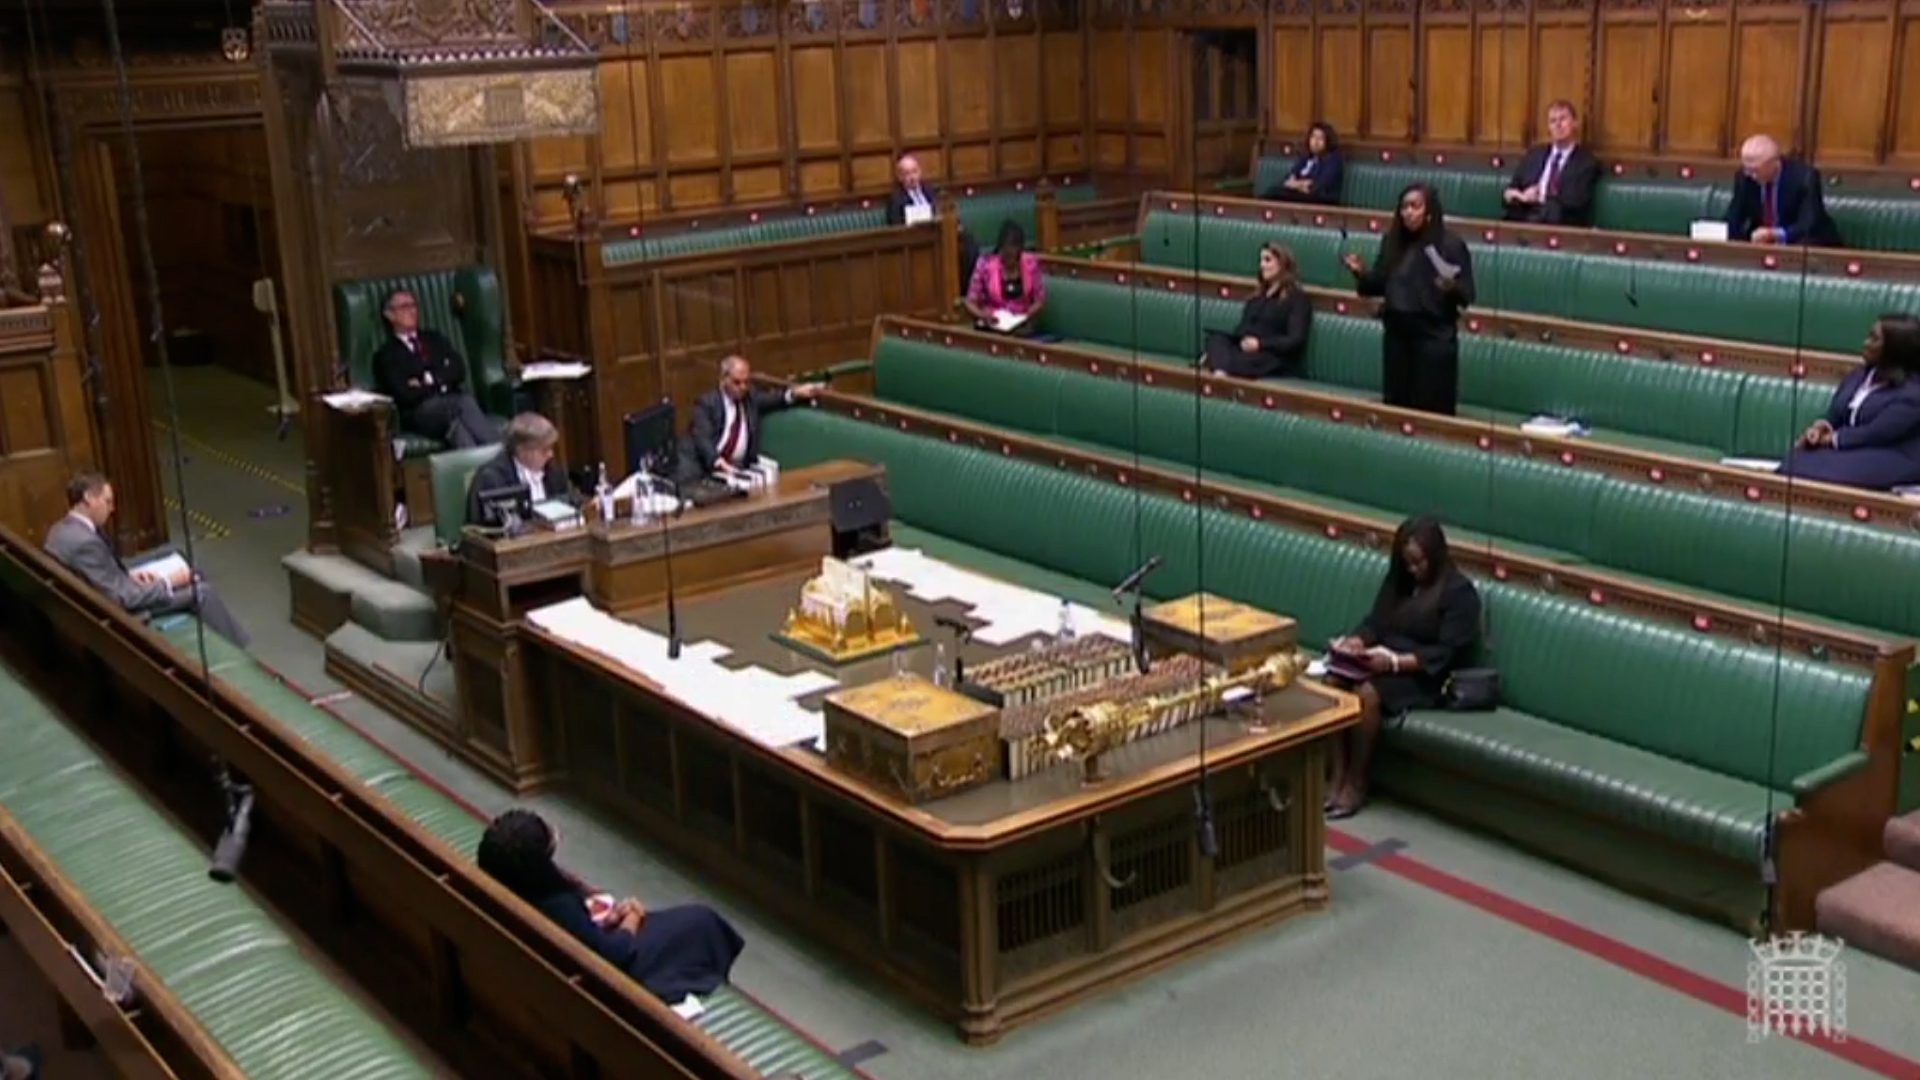 Wide view of Dawn Butler on her feet speaking in the House of Commons with MPs socially distanced during Black History month debate